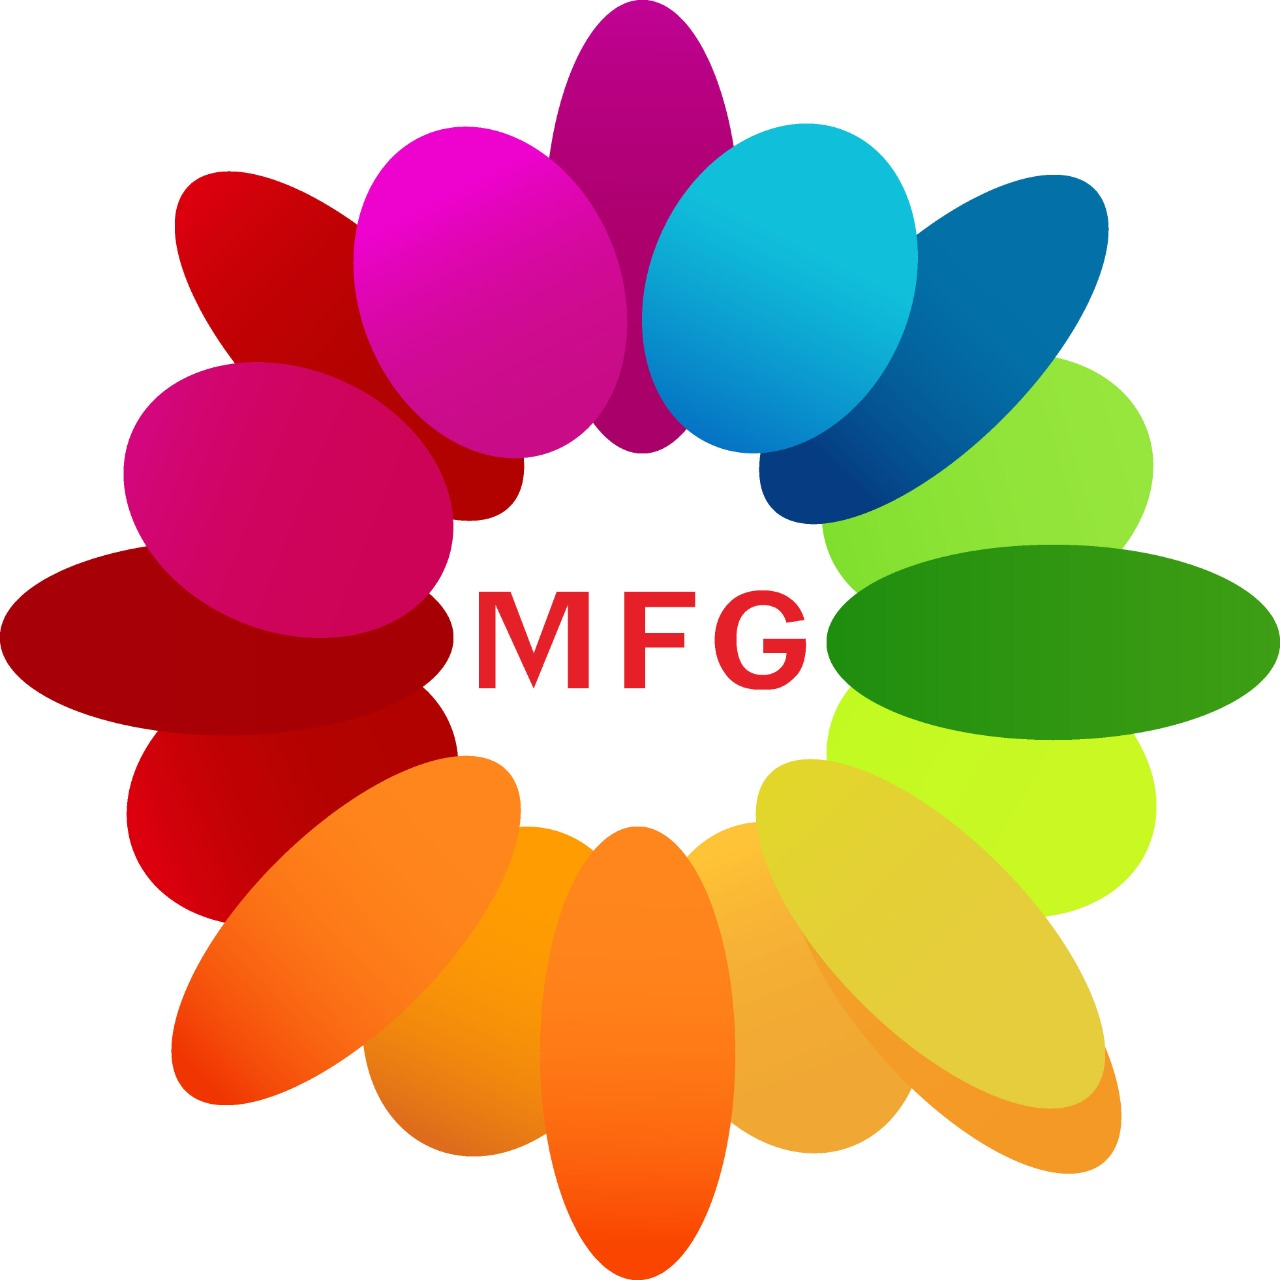 first impression 20 roses beautifully arranged in glass vase with a cute 6 inch teddy bear